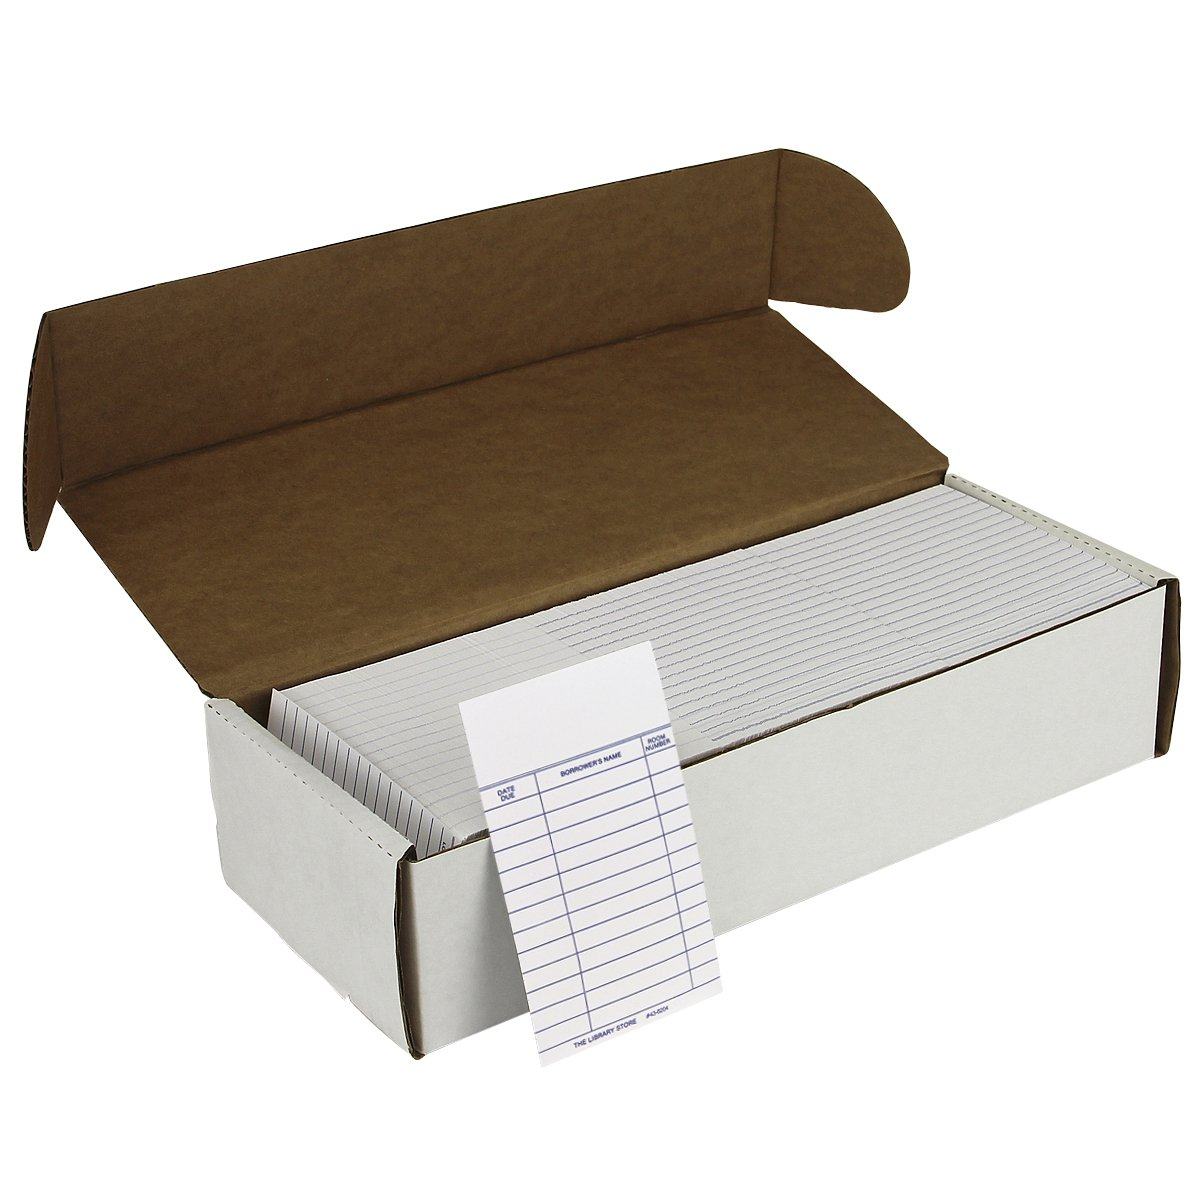 Book Cards White 3 Column with Room Number - Medium Weight 1000/pkg